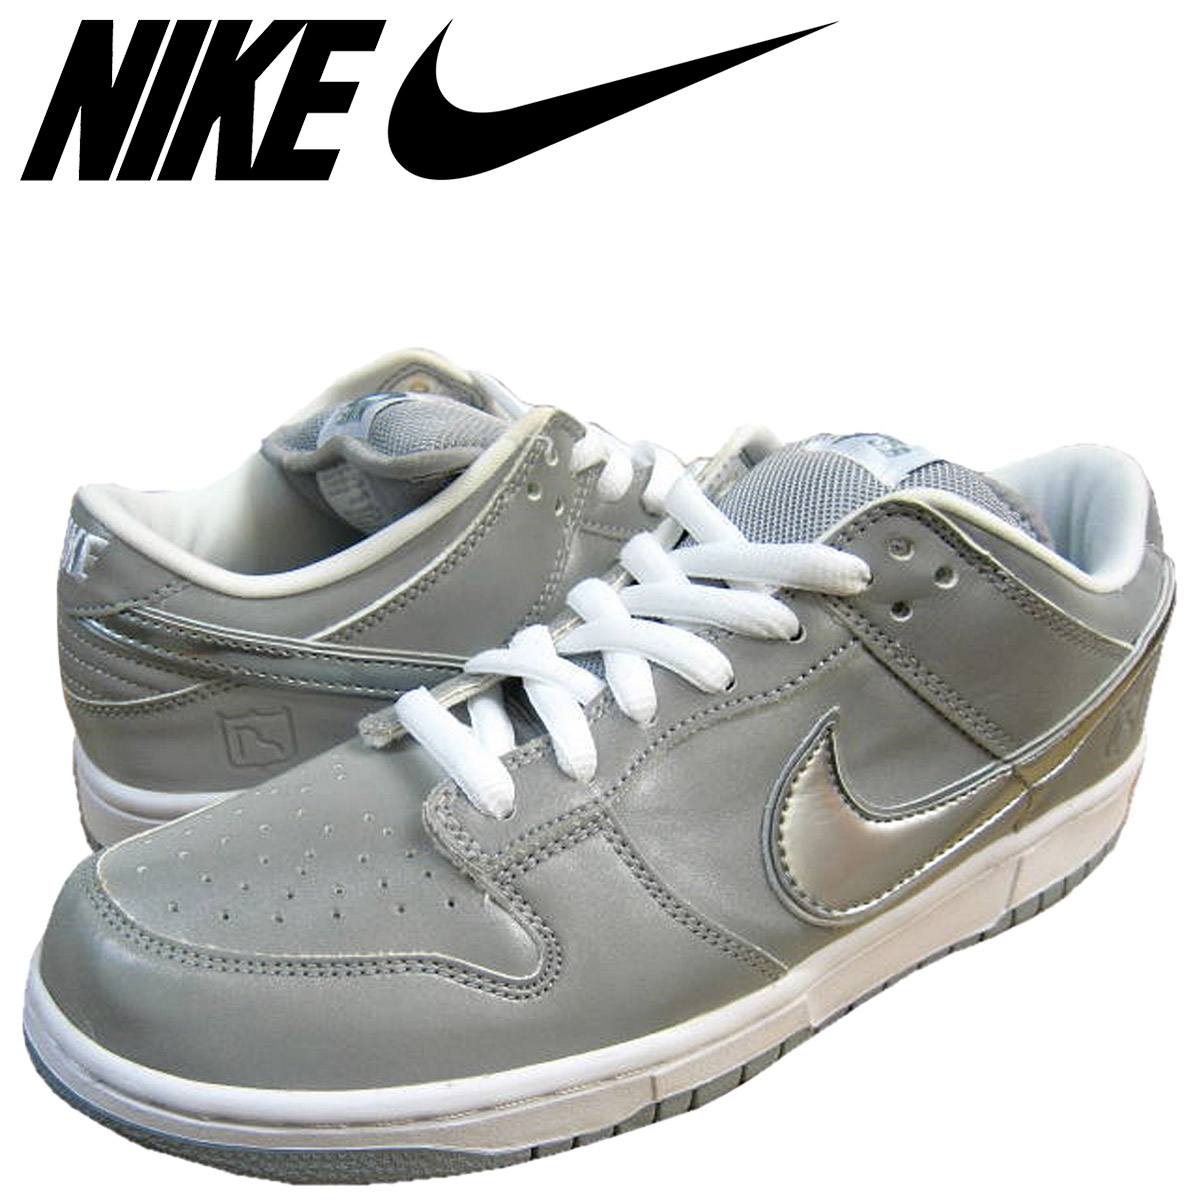 new products 43c77 7e9d6 Nike NIKE dunk sneakers DUNK LOW PRO SB MEDICOMTOY 3 dunk low Pro SB  MEDICOM 3